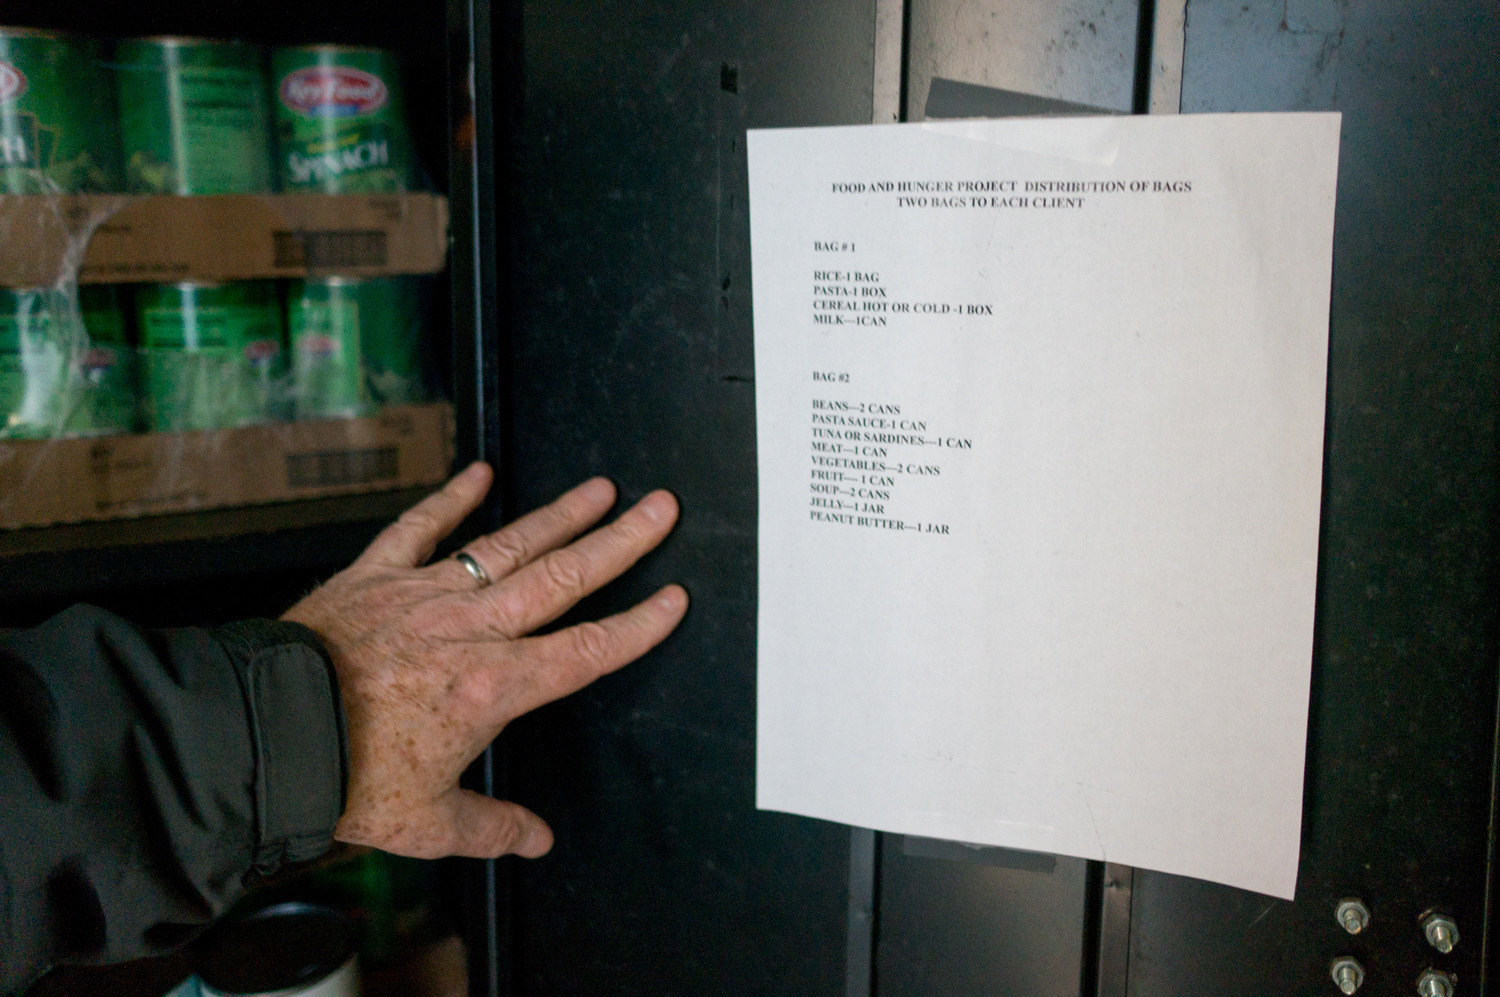 A master list pasted on the door of a cabinet inside the shipping container shows how each bag should be packed. The Kingsbridge Riverdale Marble Hill Food & Hunger Project distributes two bags of groceries per person each week.